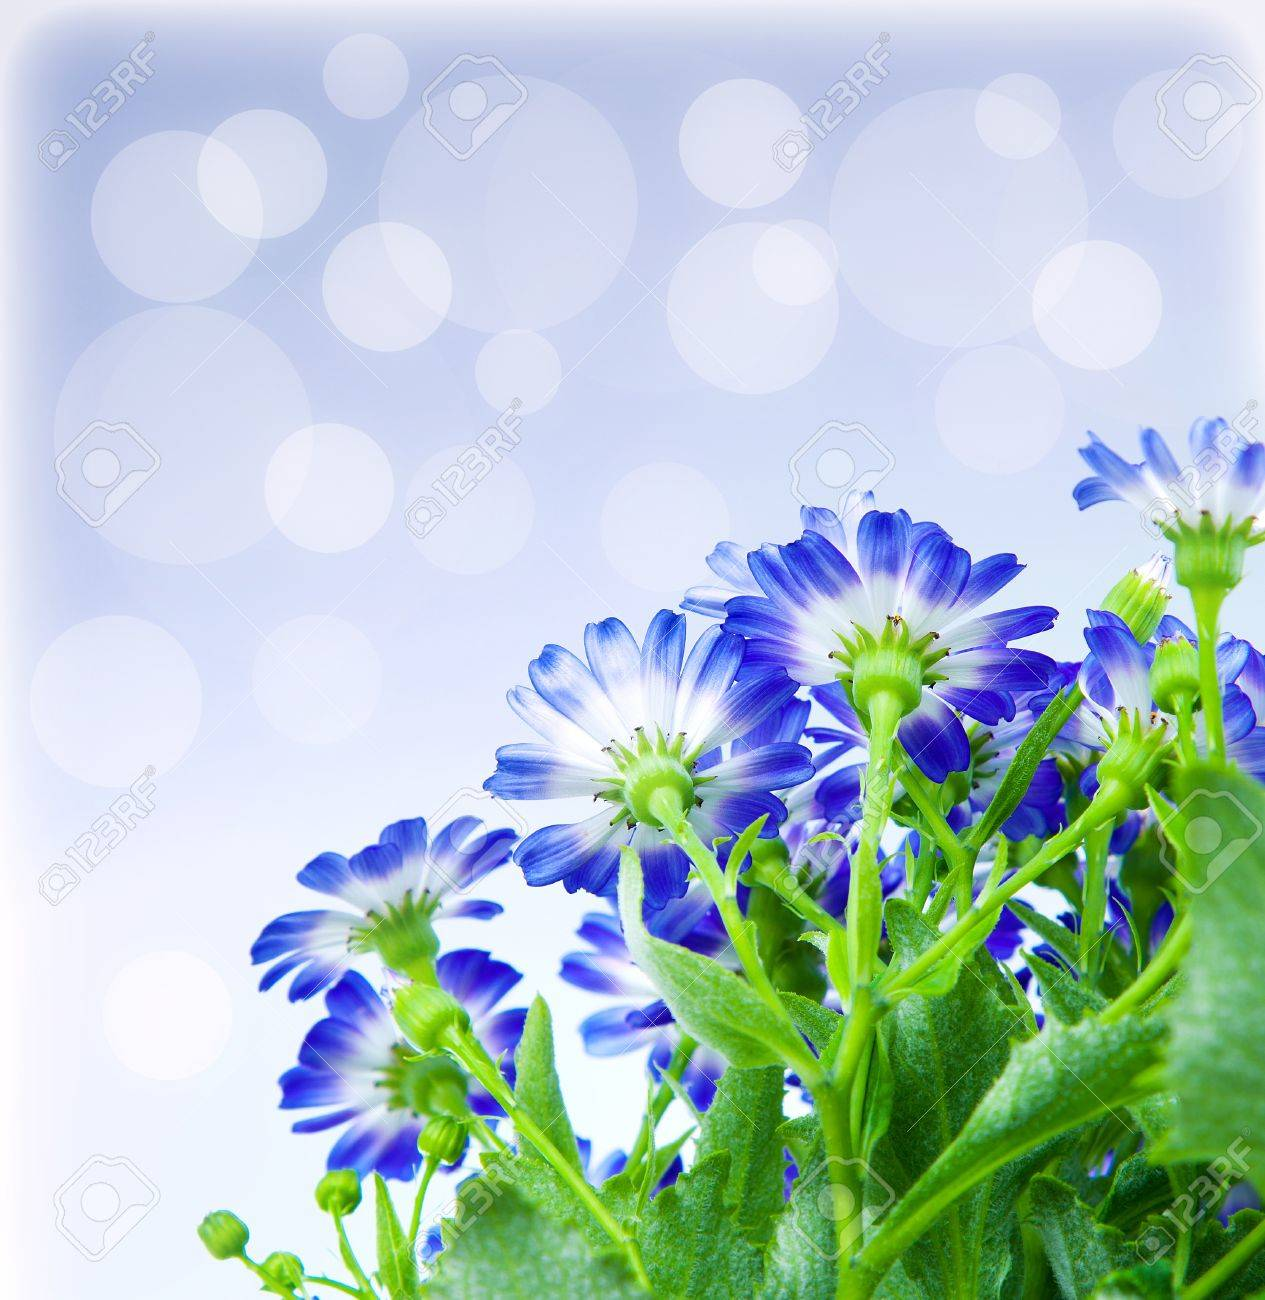 Floral Border, Fresh Spring Blue Blooming Flowers Over Abstract ...